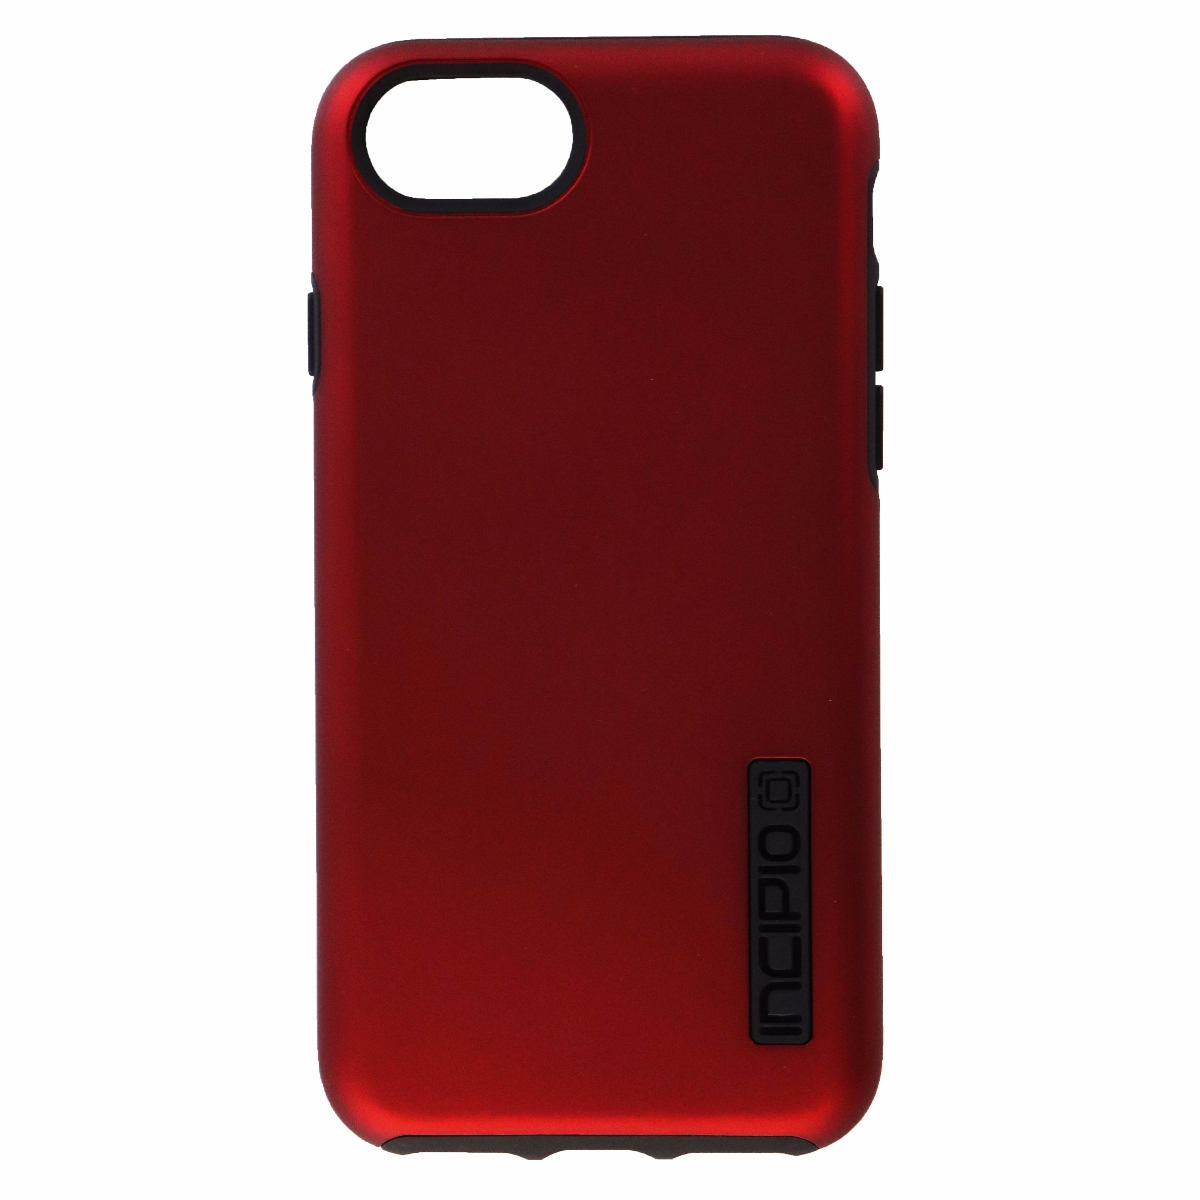 Incipio DualPro Series Protective Case Cover for iPhone 8 7 - Red / Black